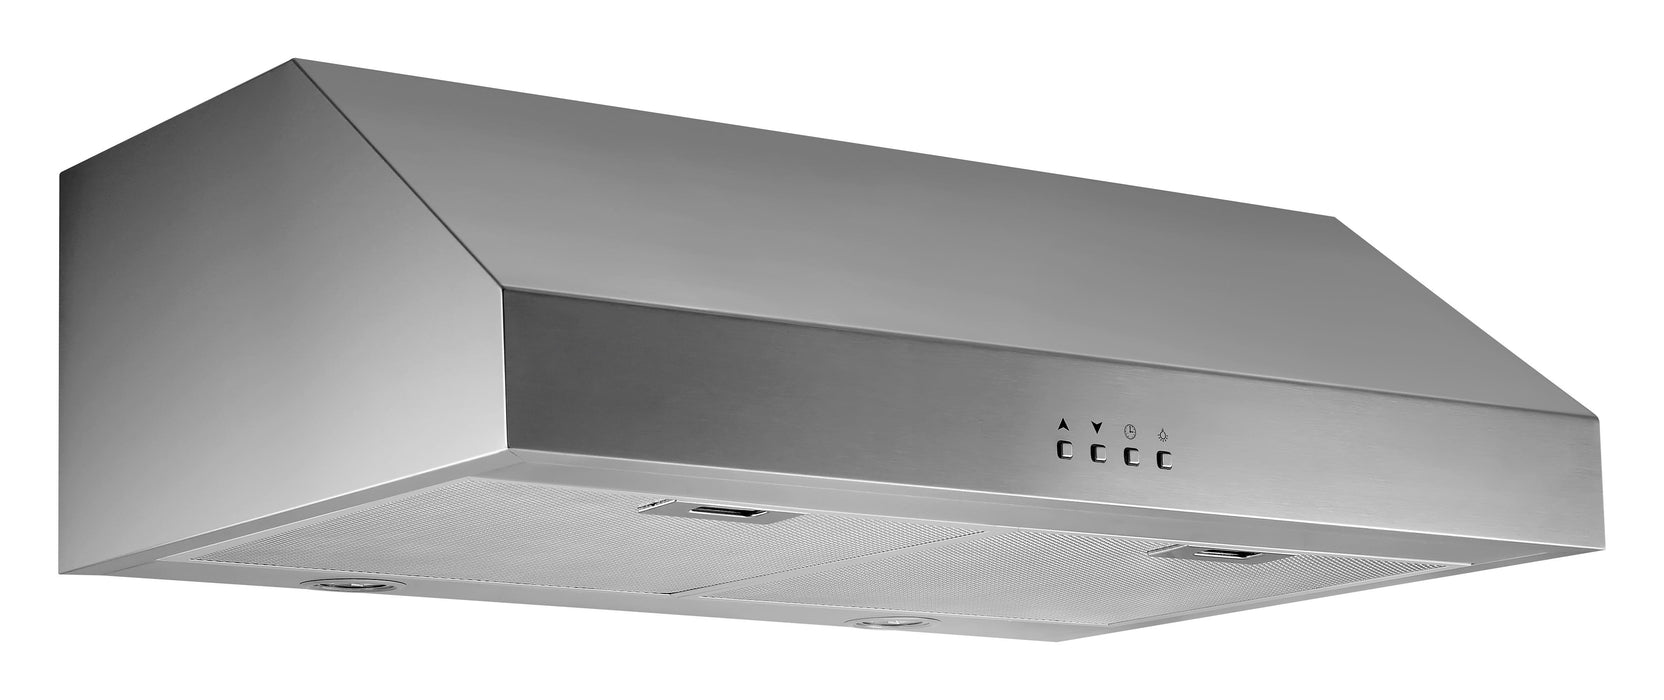 30-inch Stainless Steel Under Cabinet Range Hood with Square Buttons